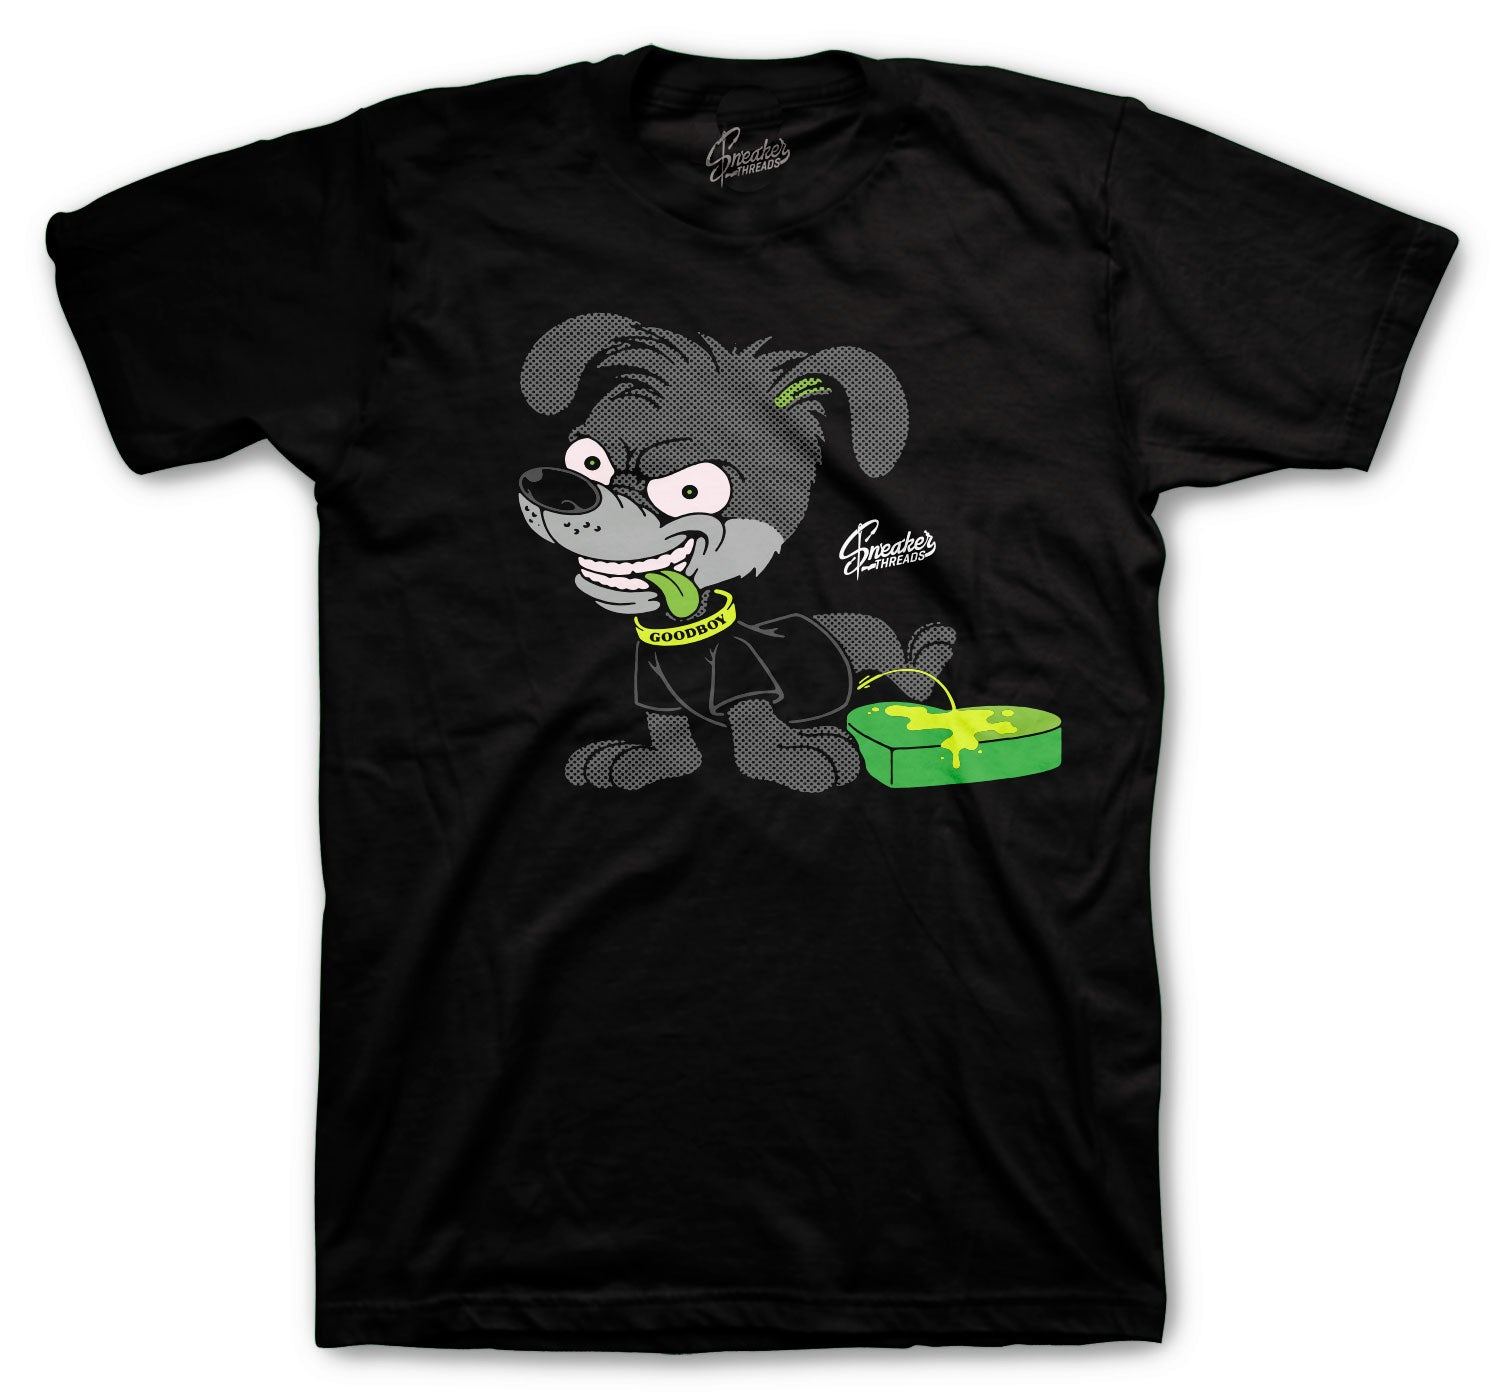 Grinch 6 Shirt - Love Stinks - Black